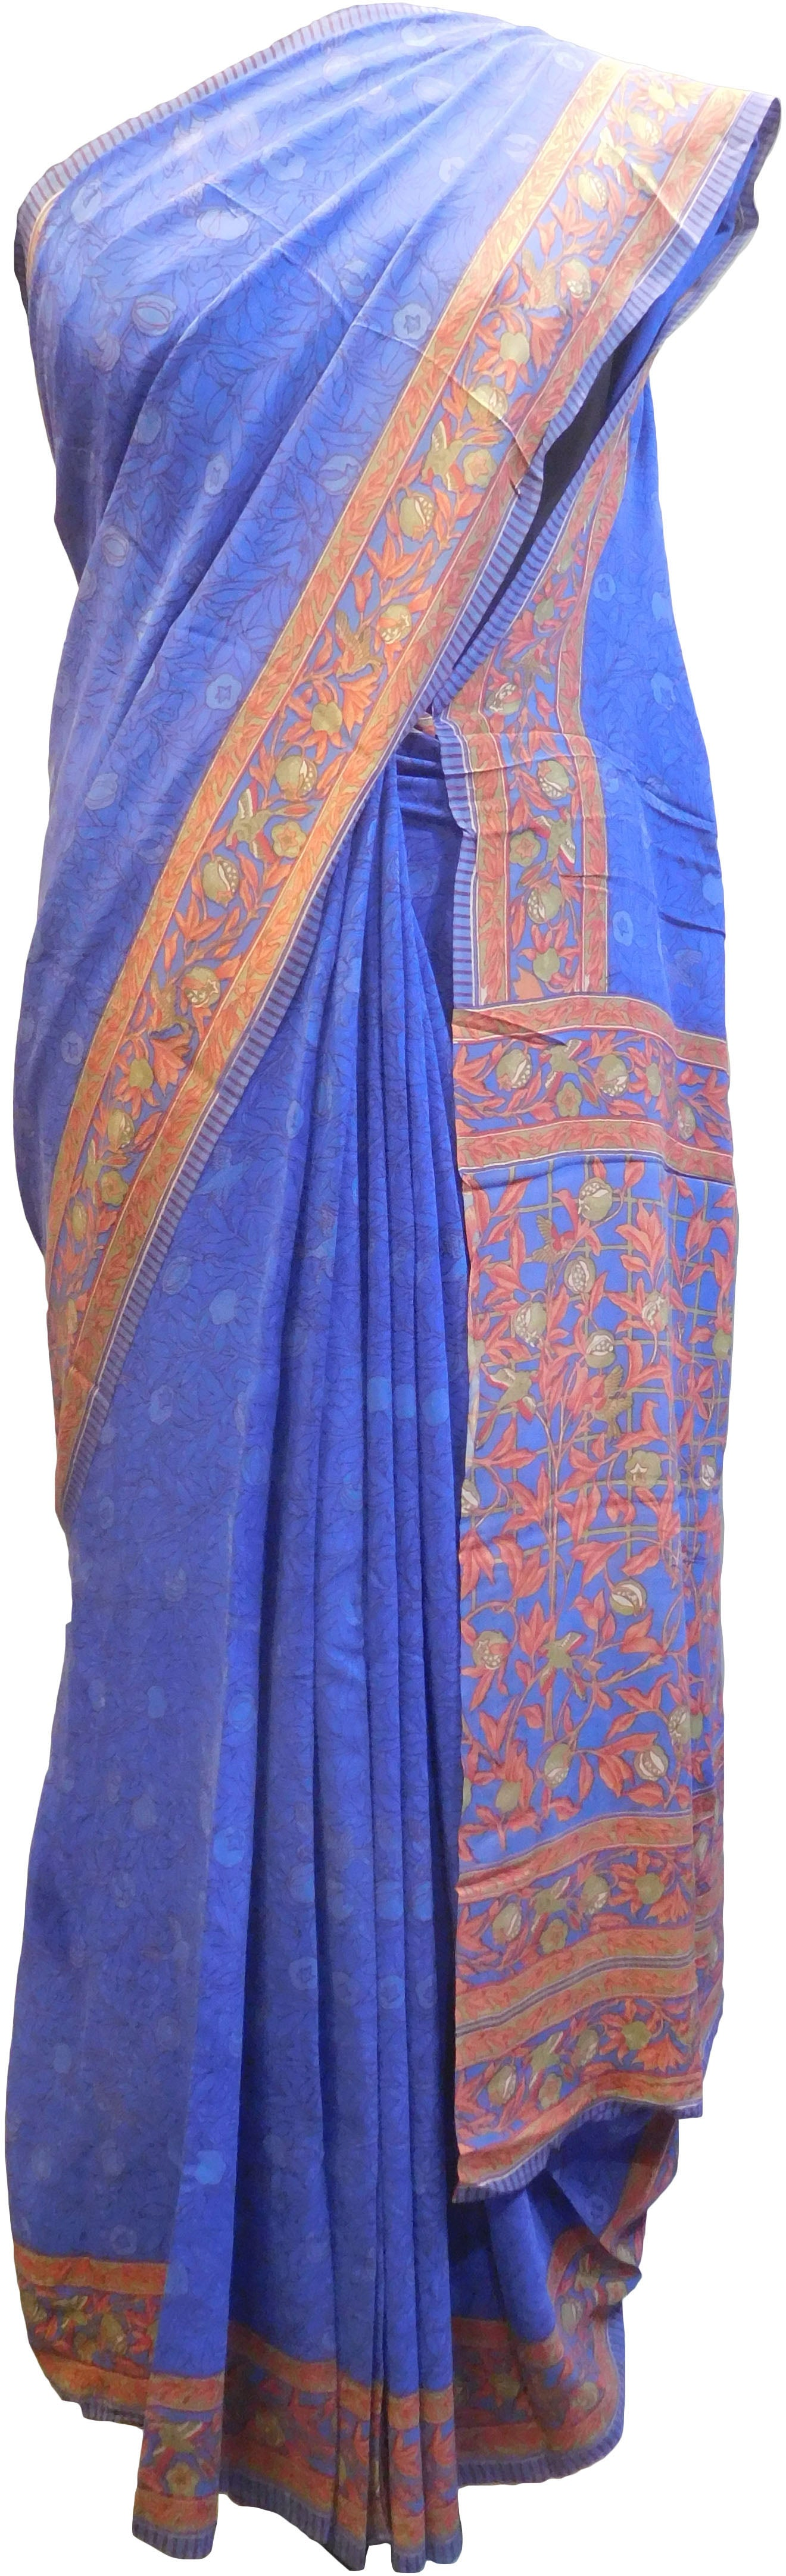 SMSAREE Multi Color Designer Wedding Partywear Pure Crepe Hand Brush Print Hand Embroidery Work Bridal Saree Sari With Blouse Piece RP338